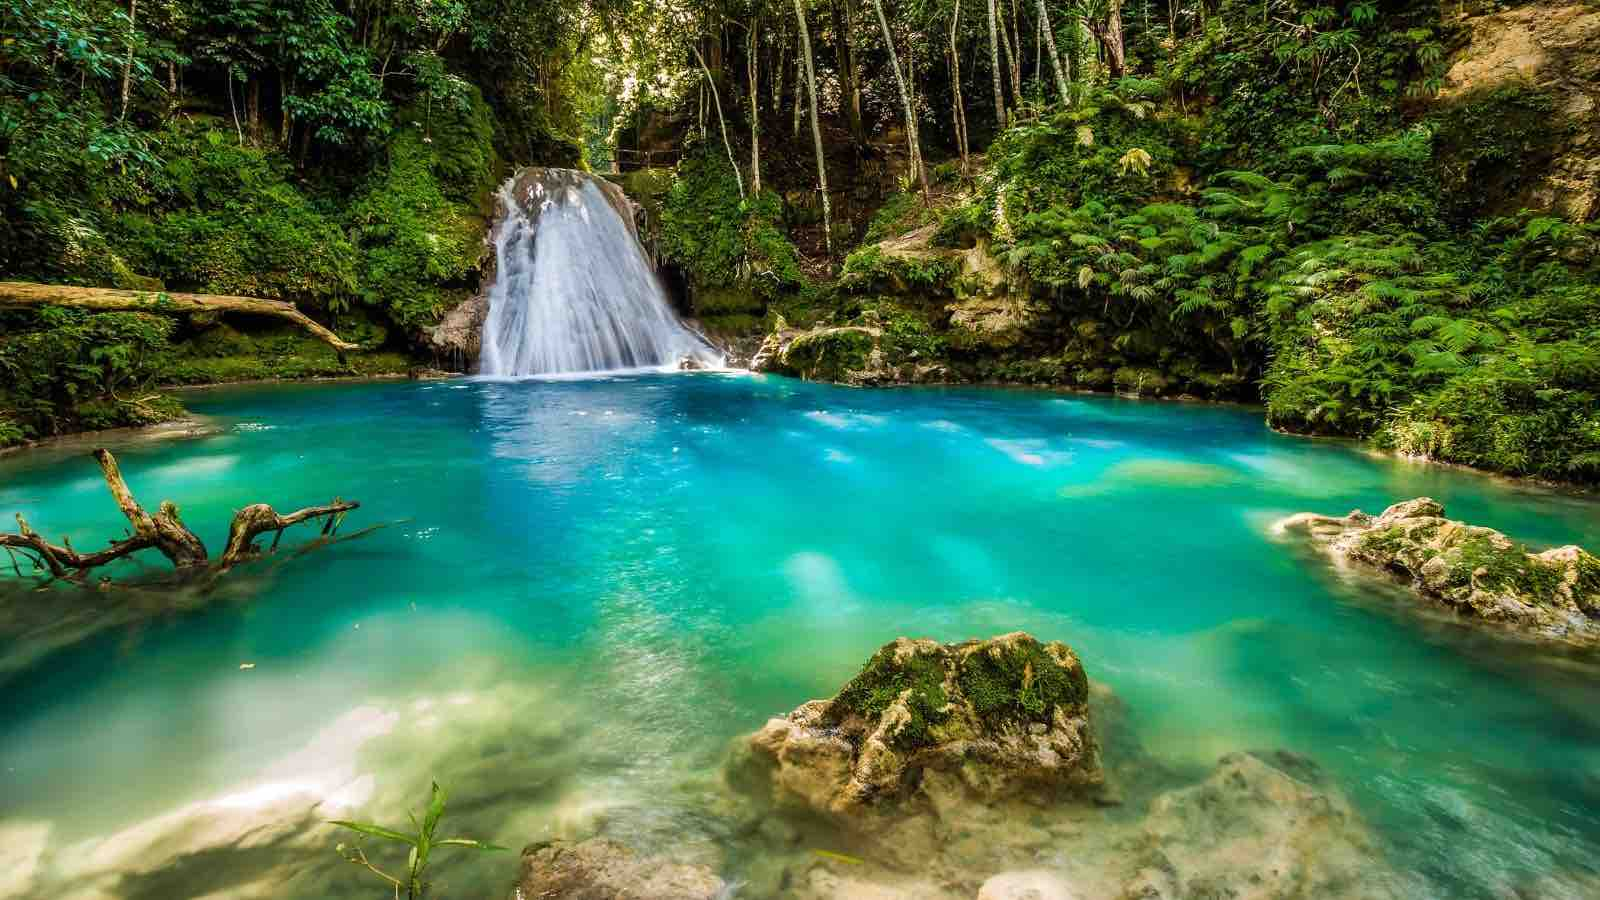 Visiting Blue Hole Jamaica The Insiders Guide The Dharma